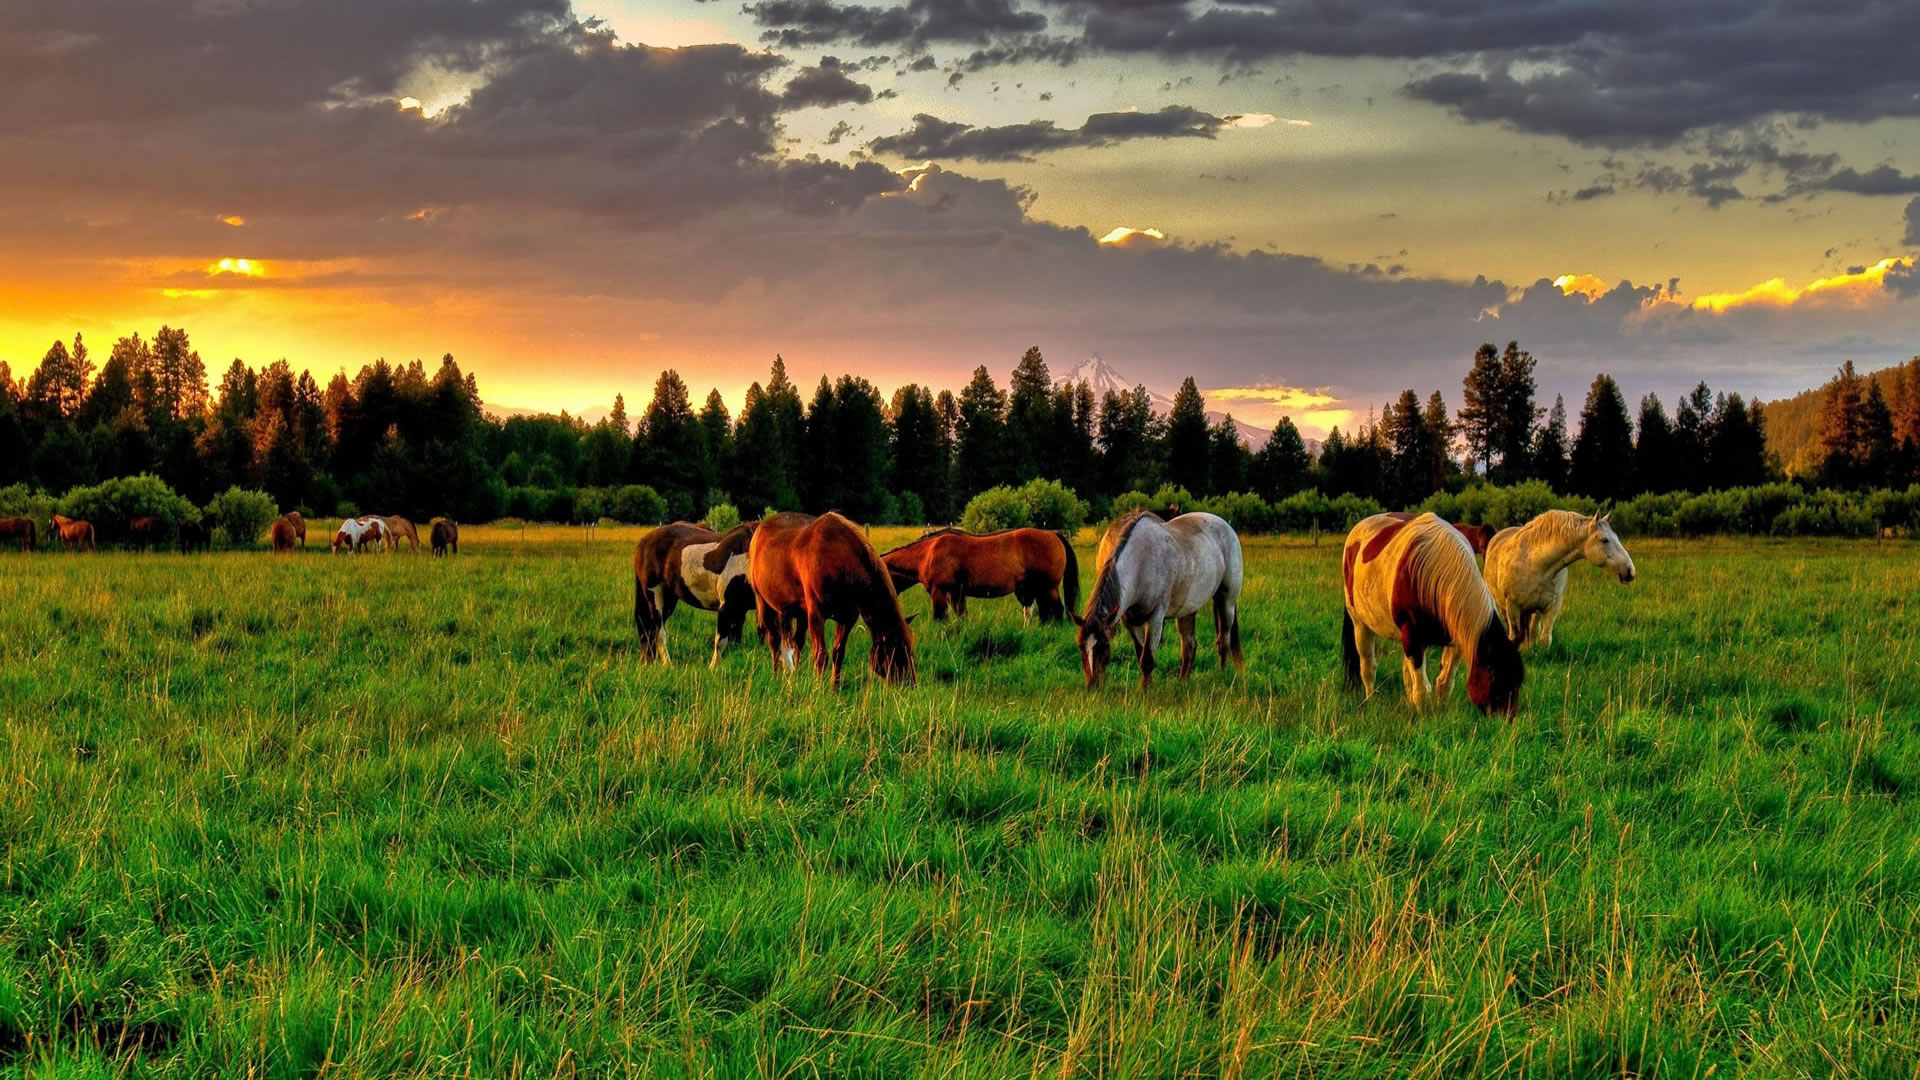 Wild Horse Wallpaper Background - WallpaperSafari